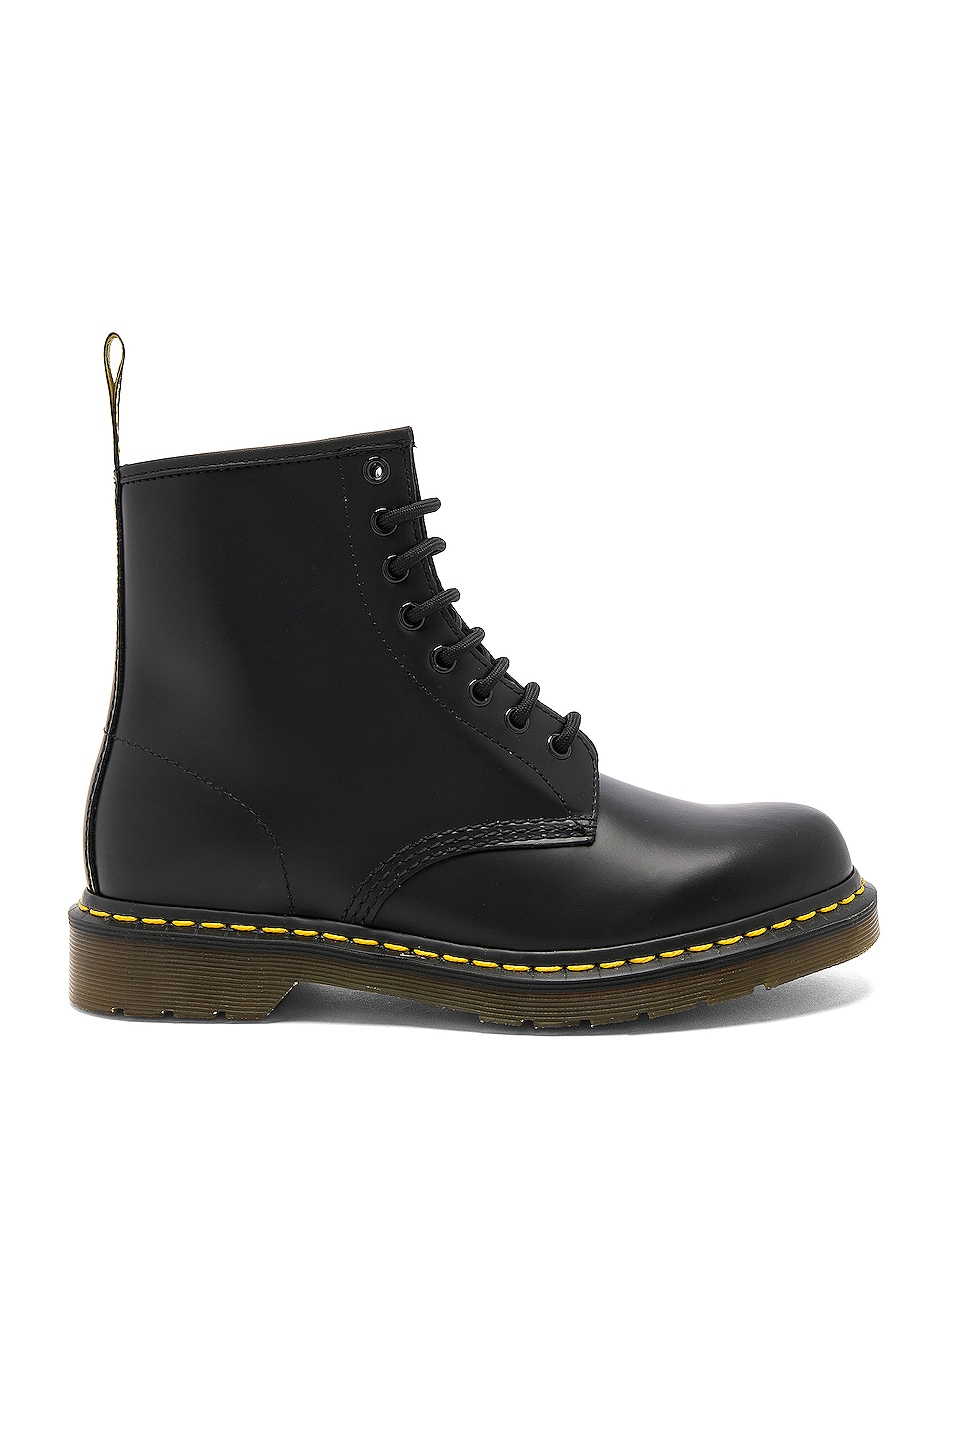 Image 1 of Dr. Martens 1460 8 Eye Leather Boots in Black